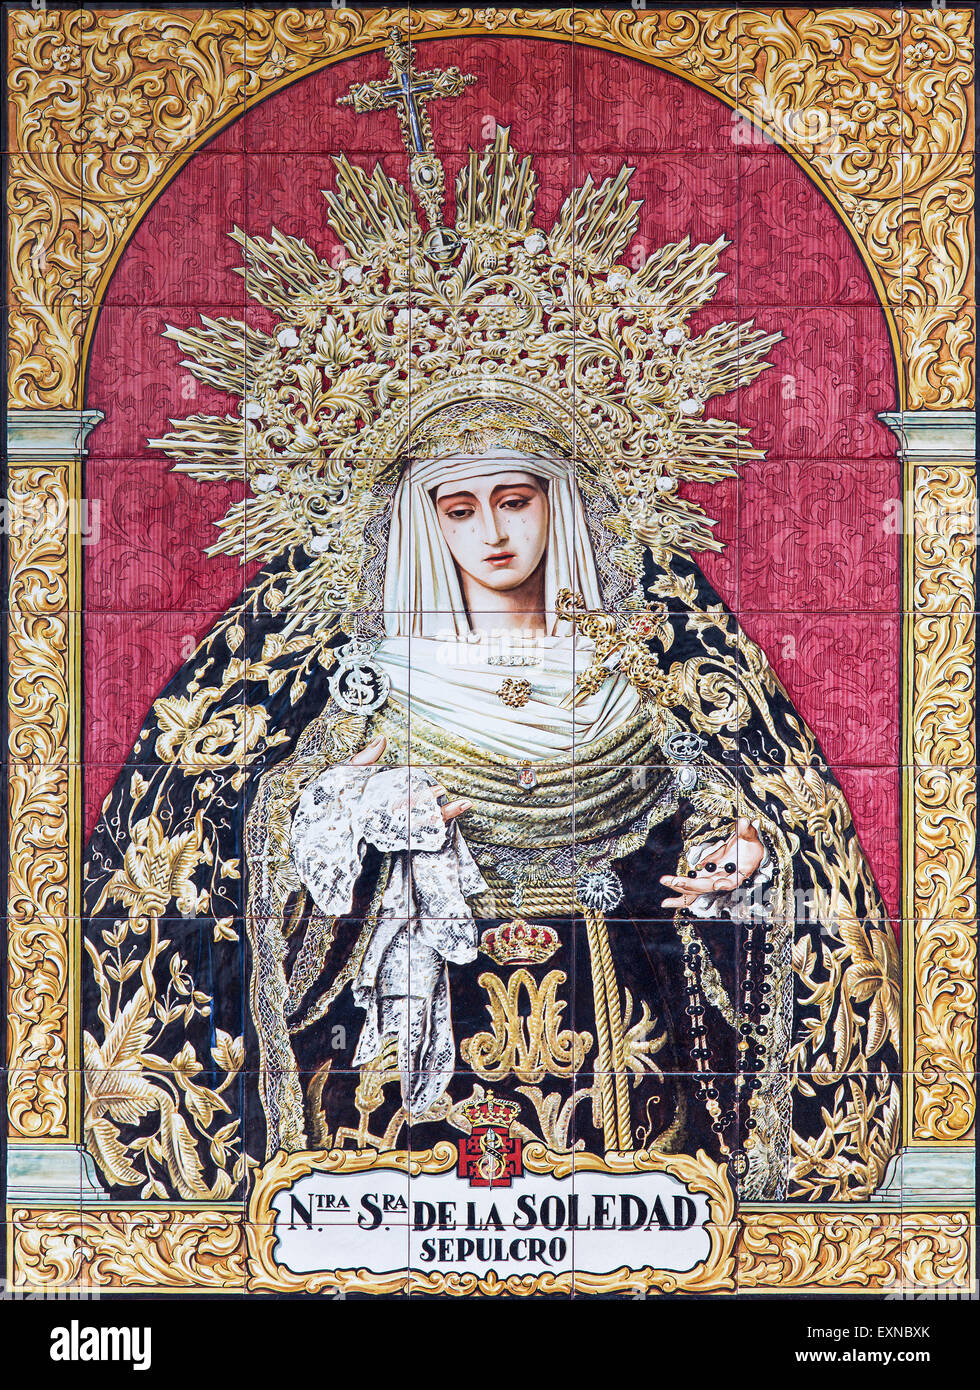 GRANADA, SPAIN - MAY 31, 2015: The ceramic tiled, cried Madonna on the facade of house on Calle Duque de la Victoria - Stock Image